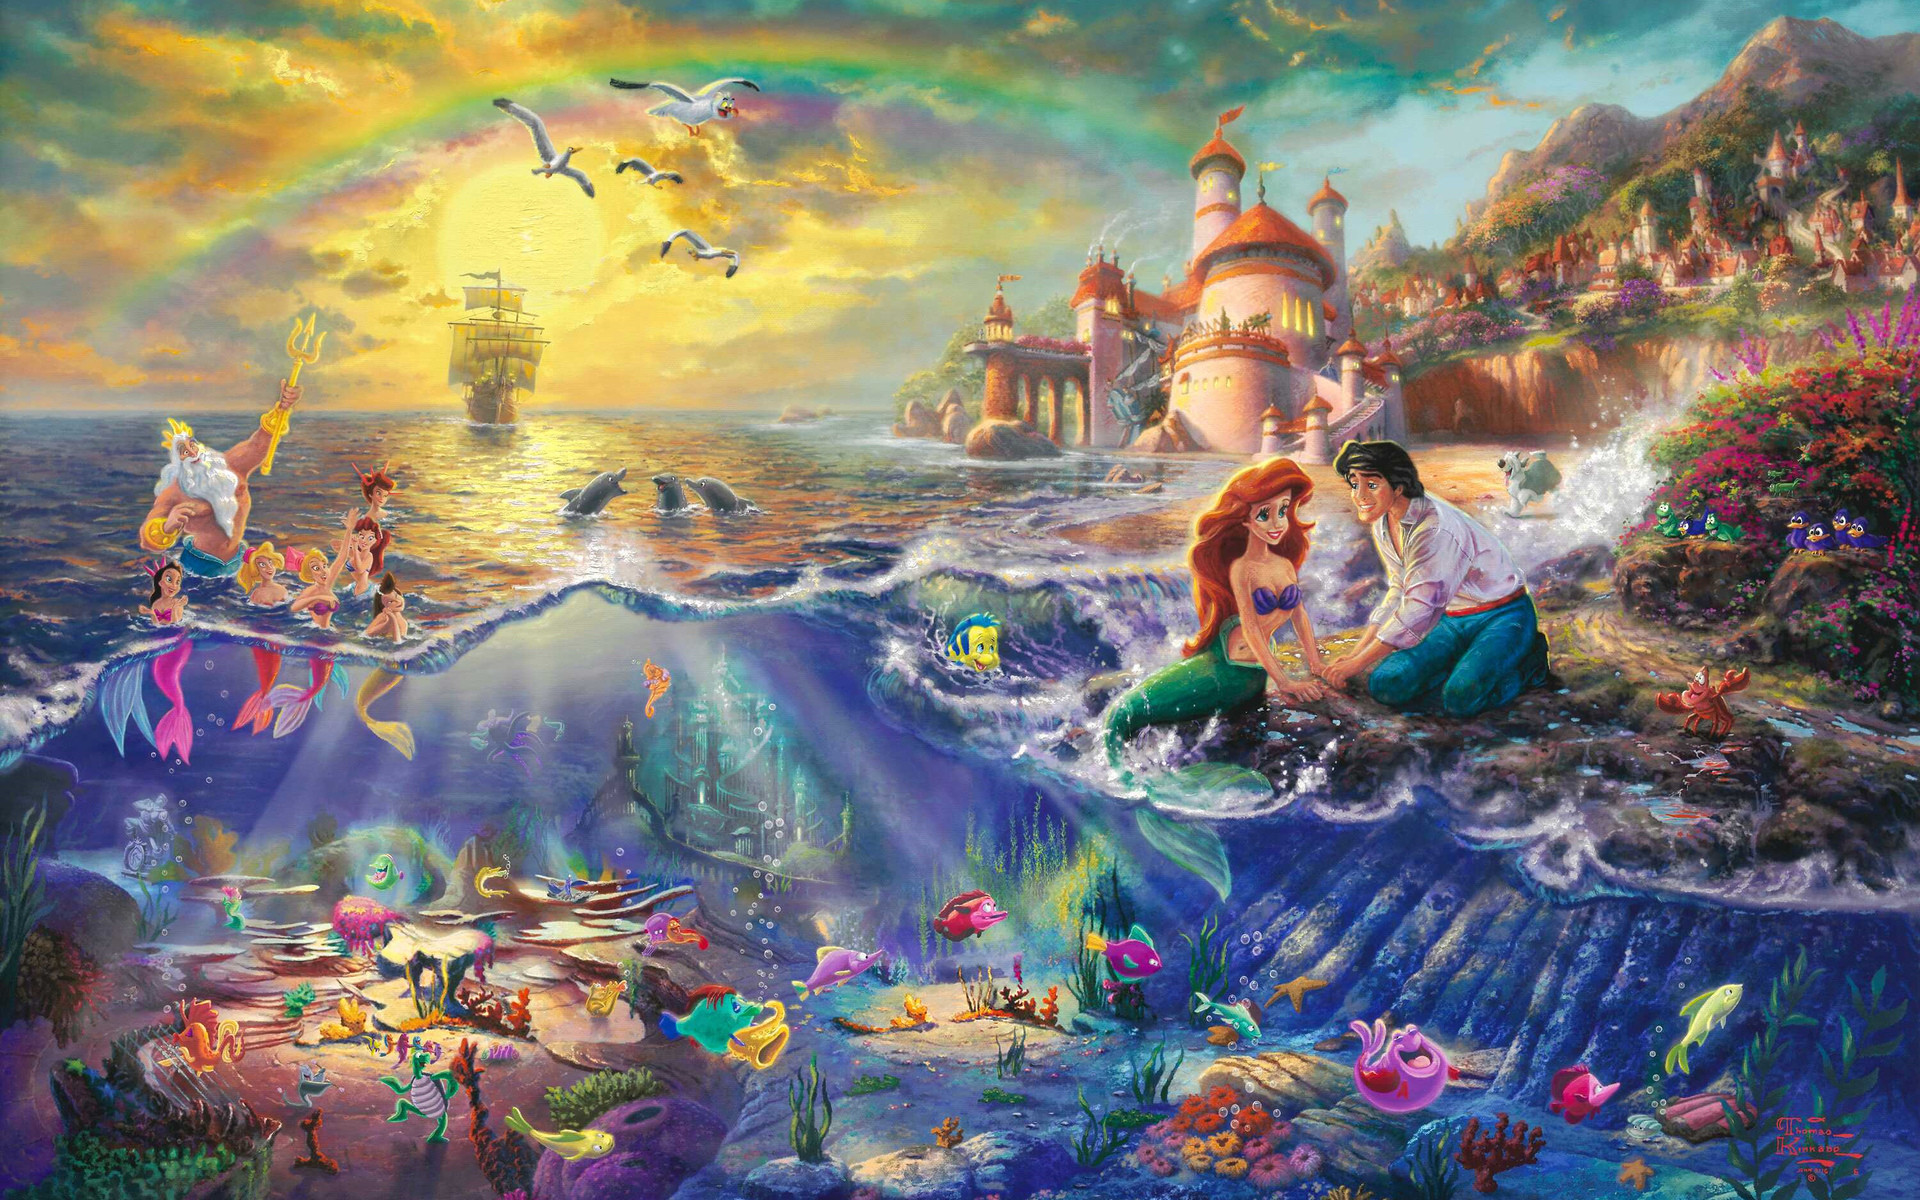 Salvador Dali Wallpaper ① Download Free Hd Backgrounds For